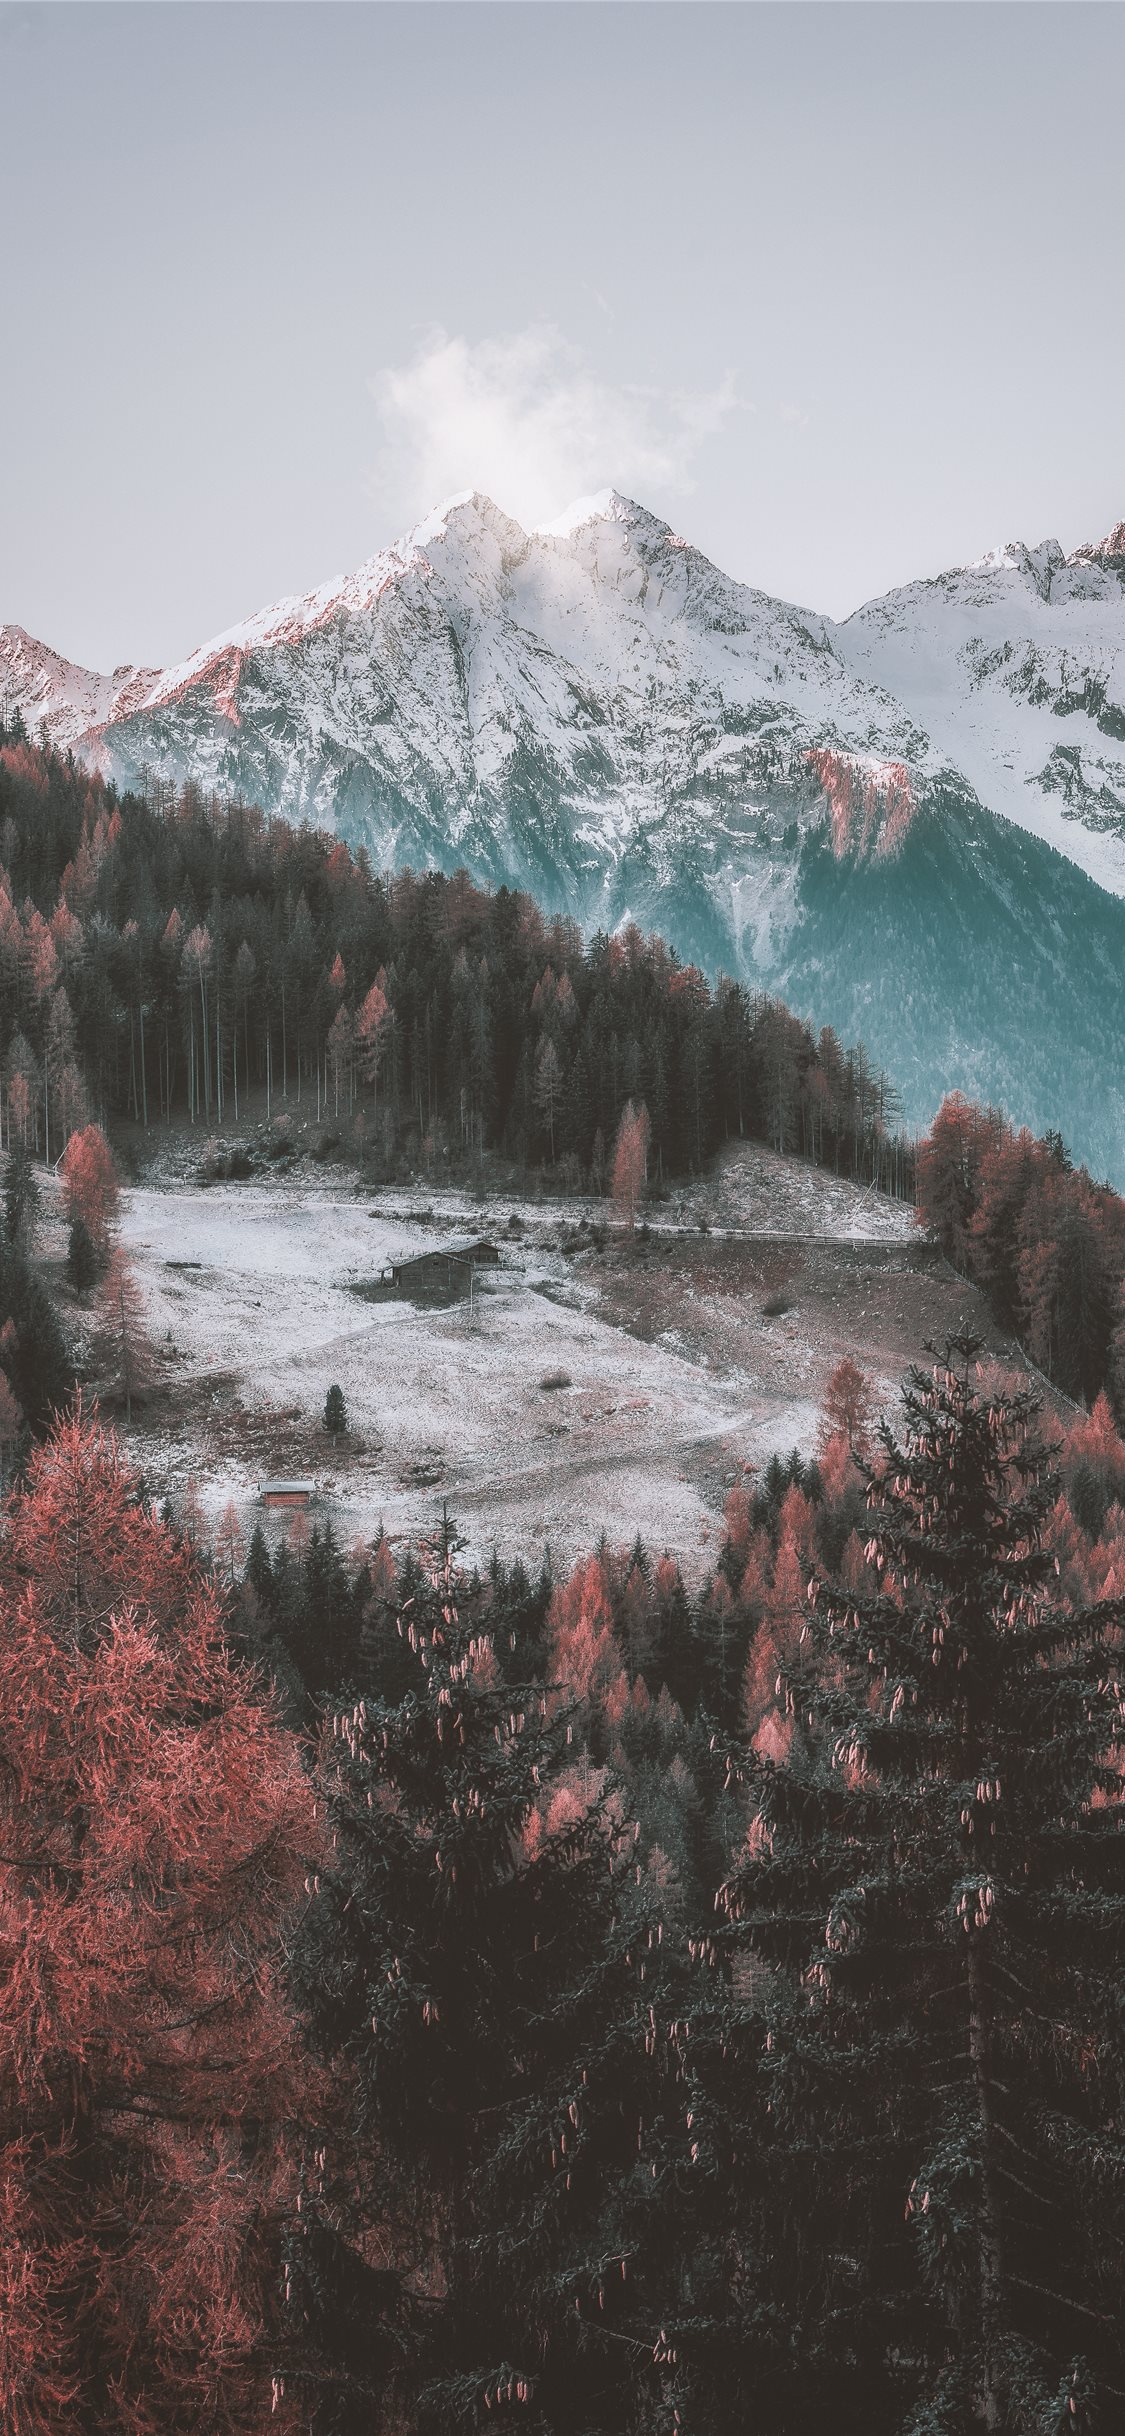 Icy Mountain And Green Trees Scenry Iphone X Wallpapers Free Download